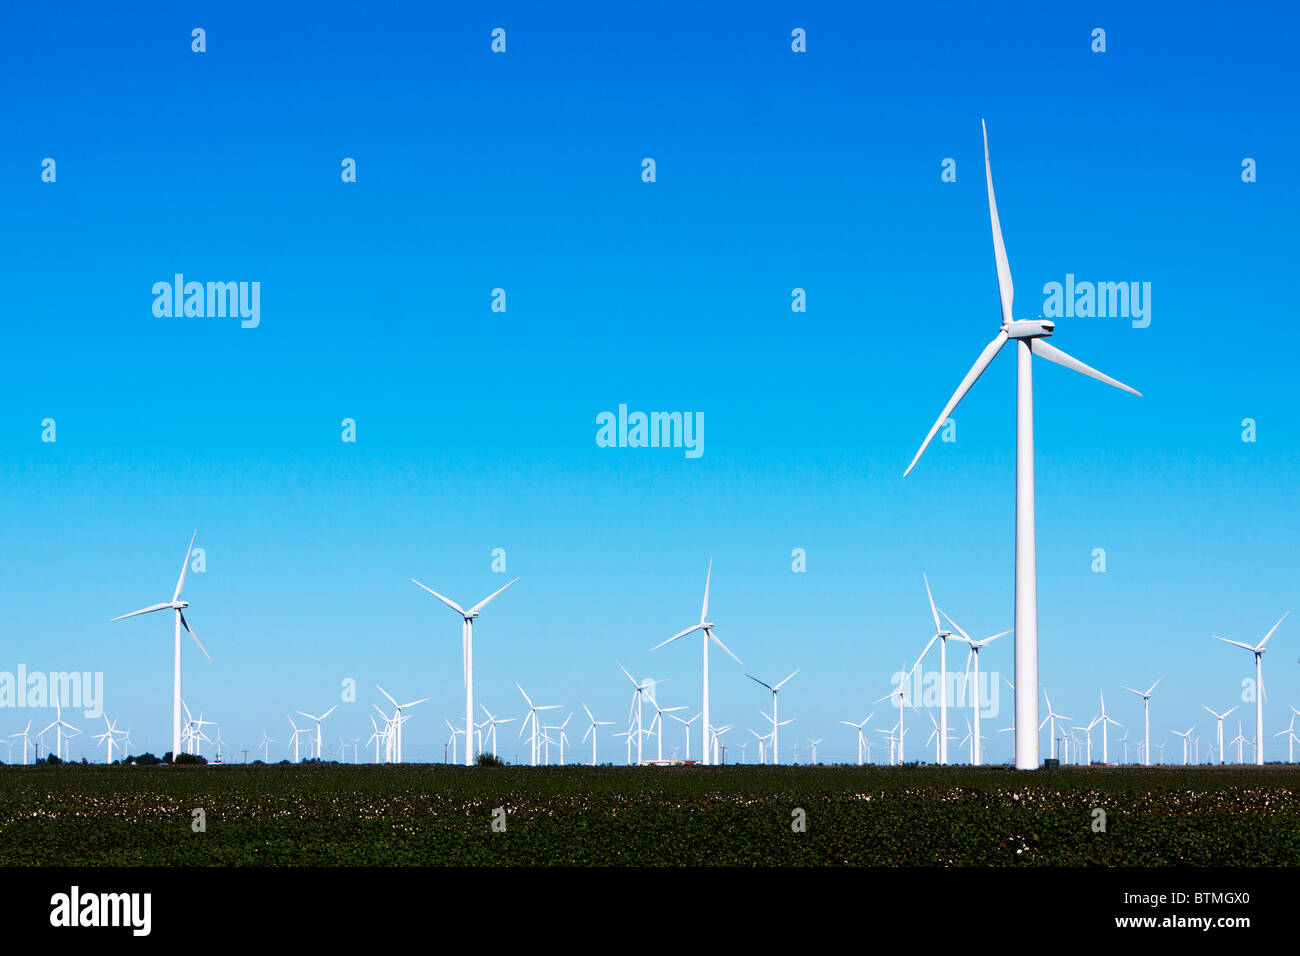 Wind Farm Turbine Towers rise over cotton fields in rural Texas. - Stock Image